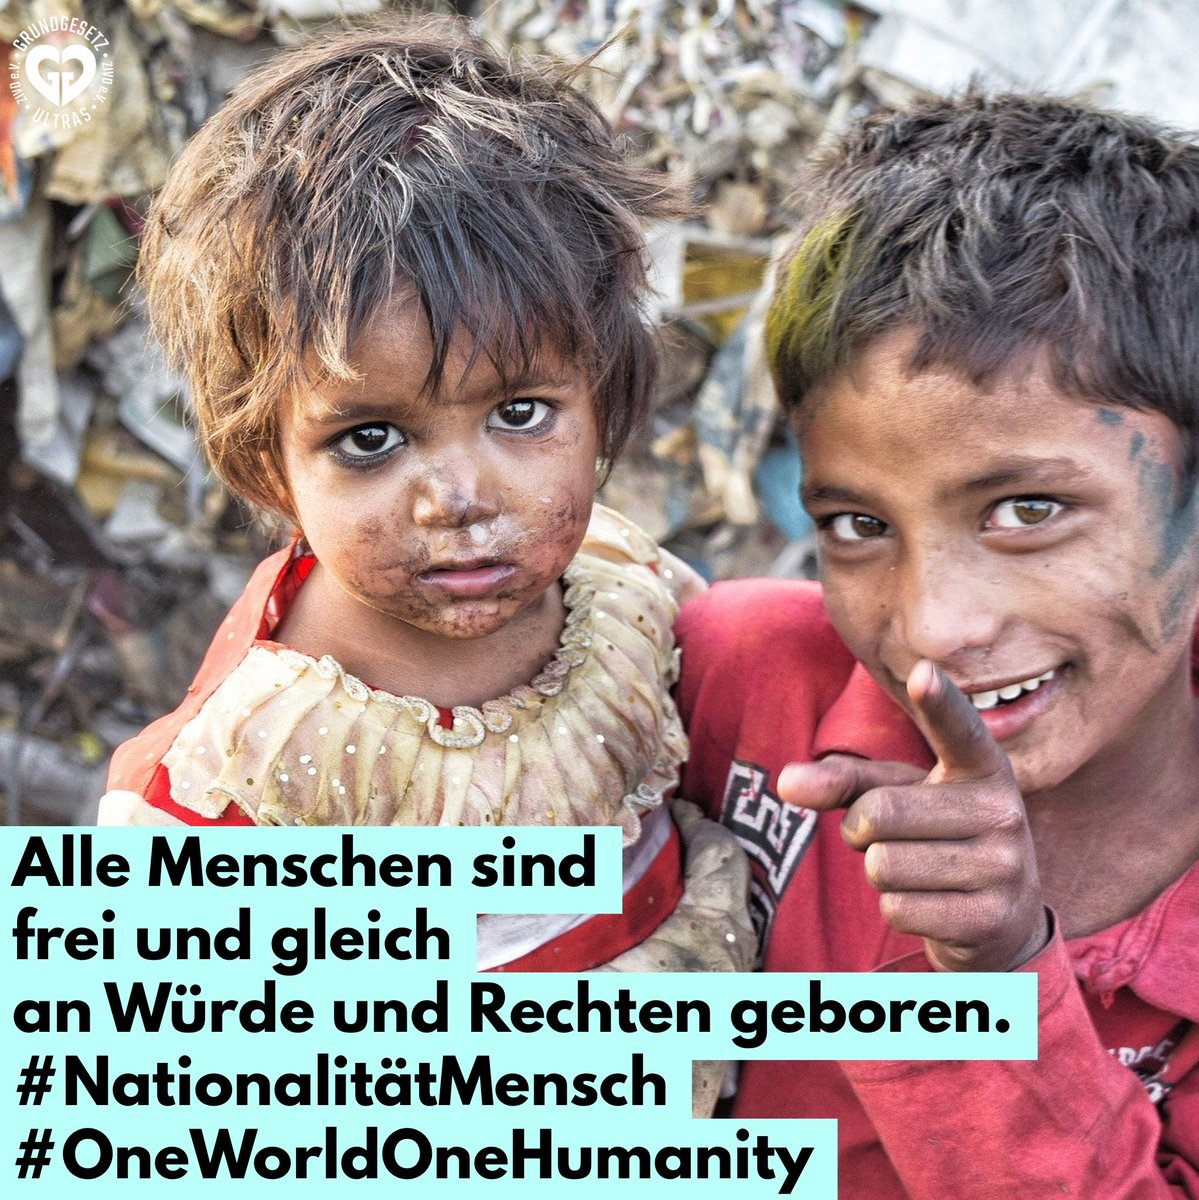 #NationalitätMensch